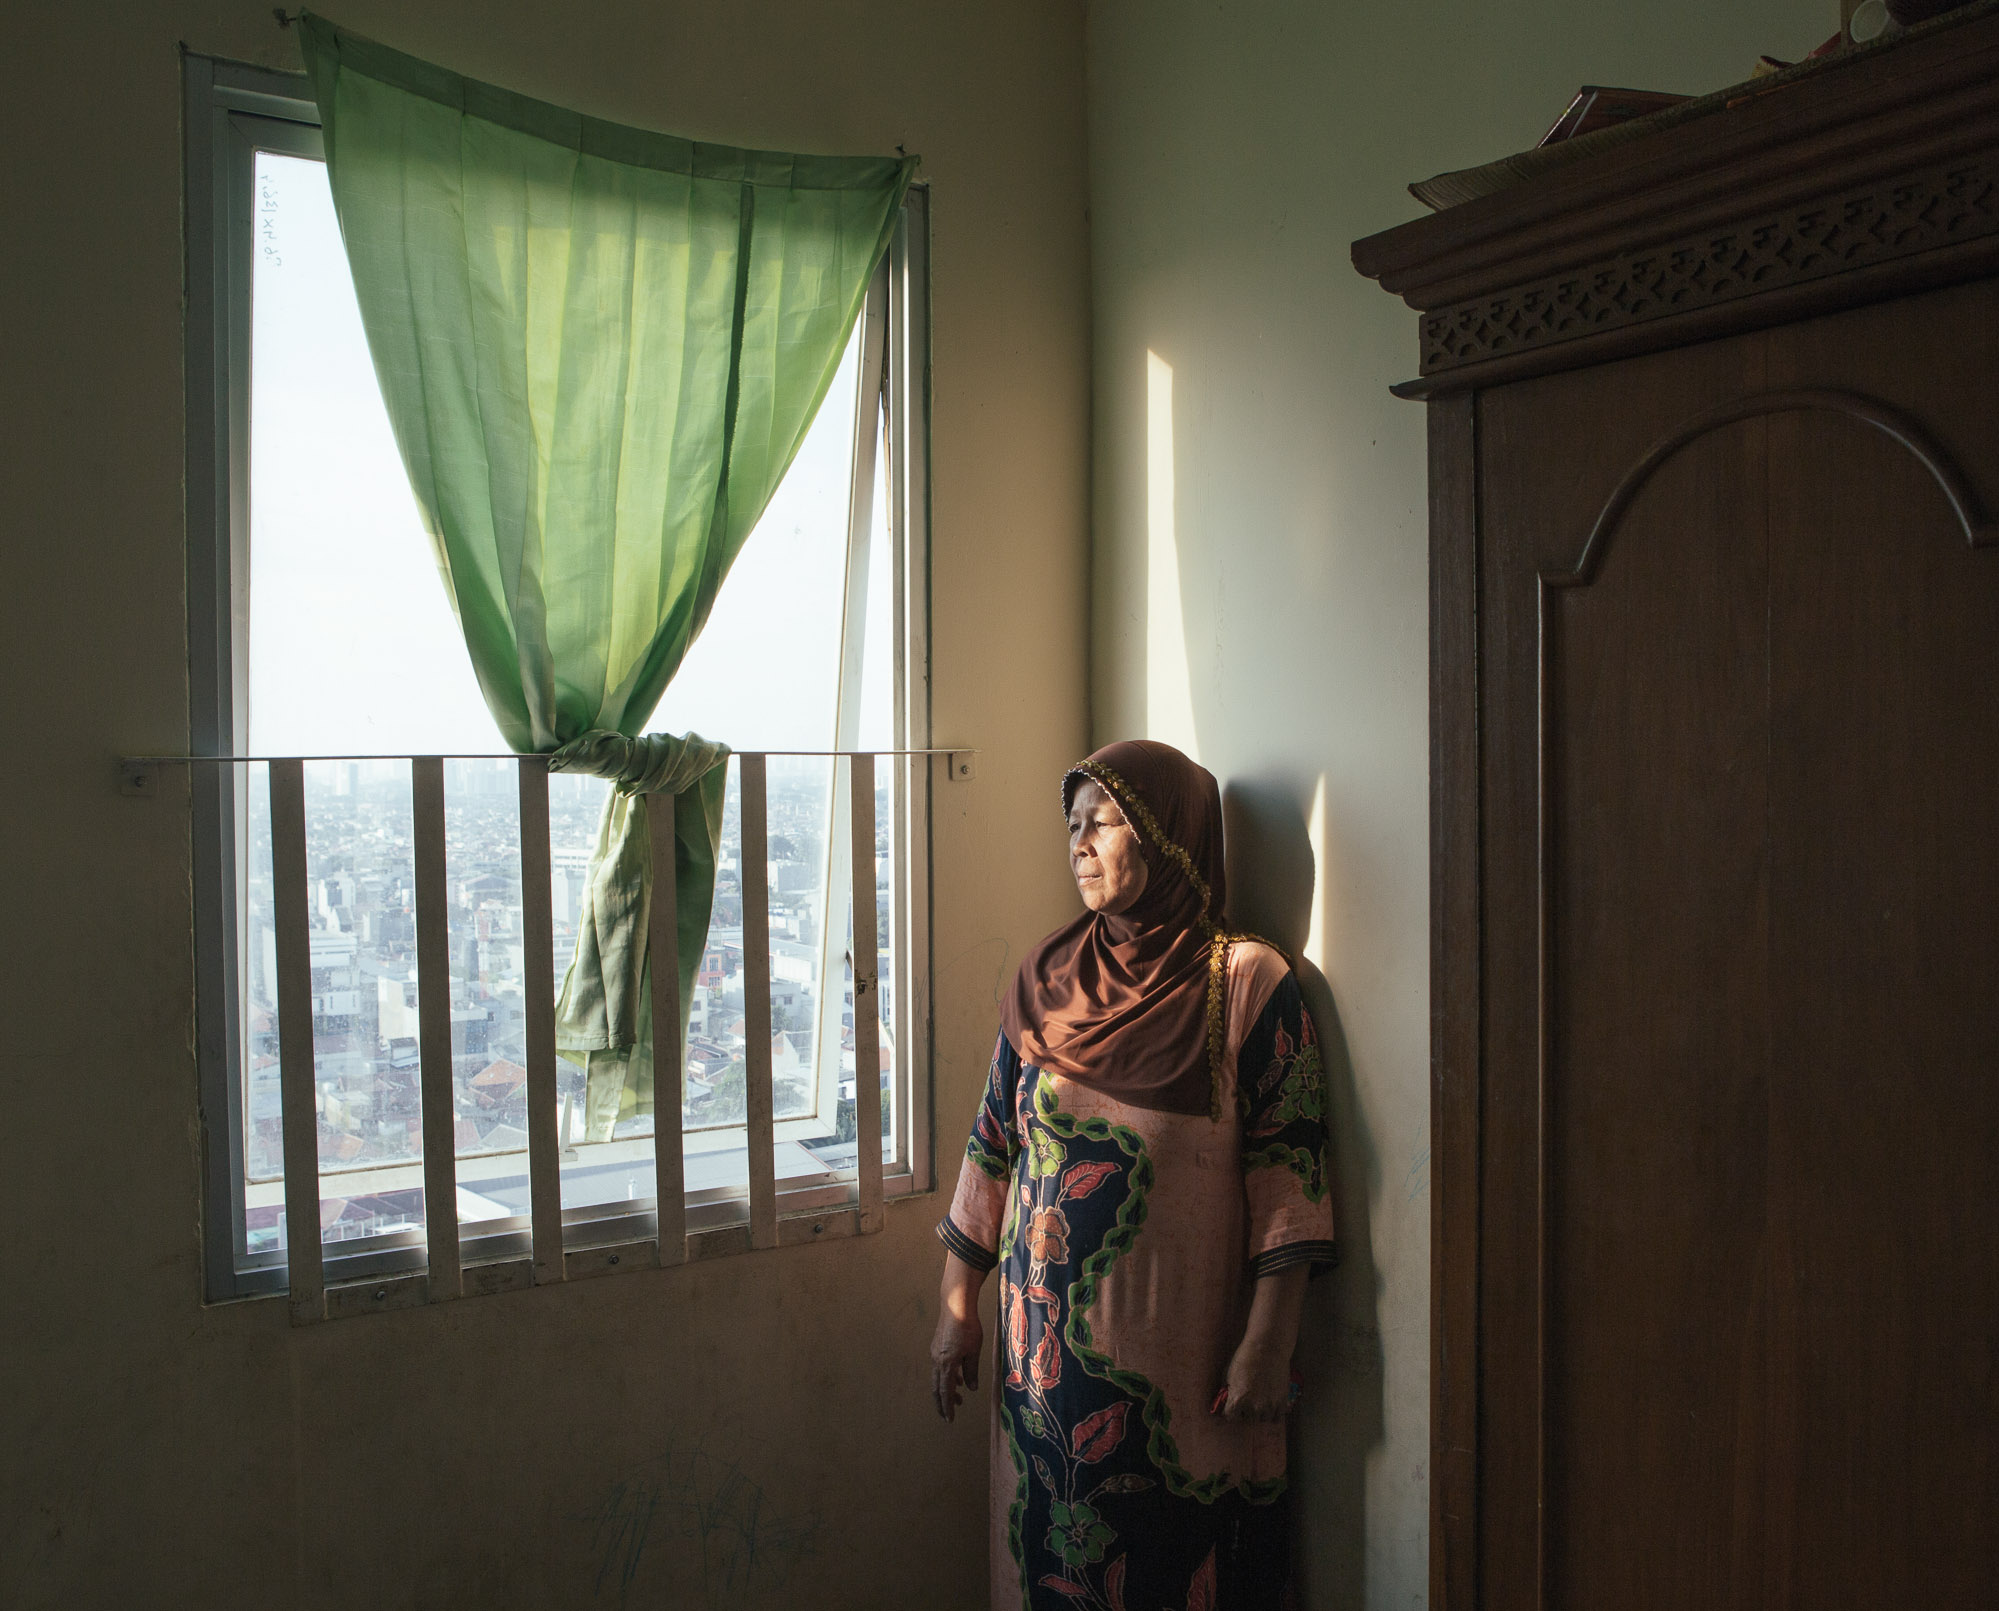 Syafitriani is among the many residents of Kampung Melayu who were evicted recently as Jakarta's government sought to revitalize the rivers to prevent flooding. She lost much of her livelihood and has to start from scratch, currently residing in a low-cost apartment nearby. (Photo by Muhammad Fadli/GroundTruth)